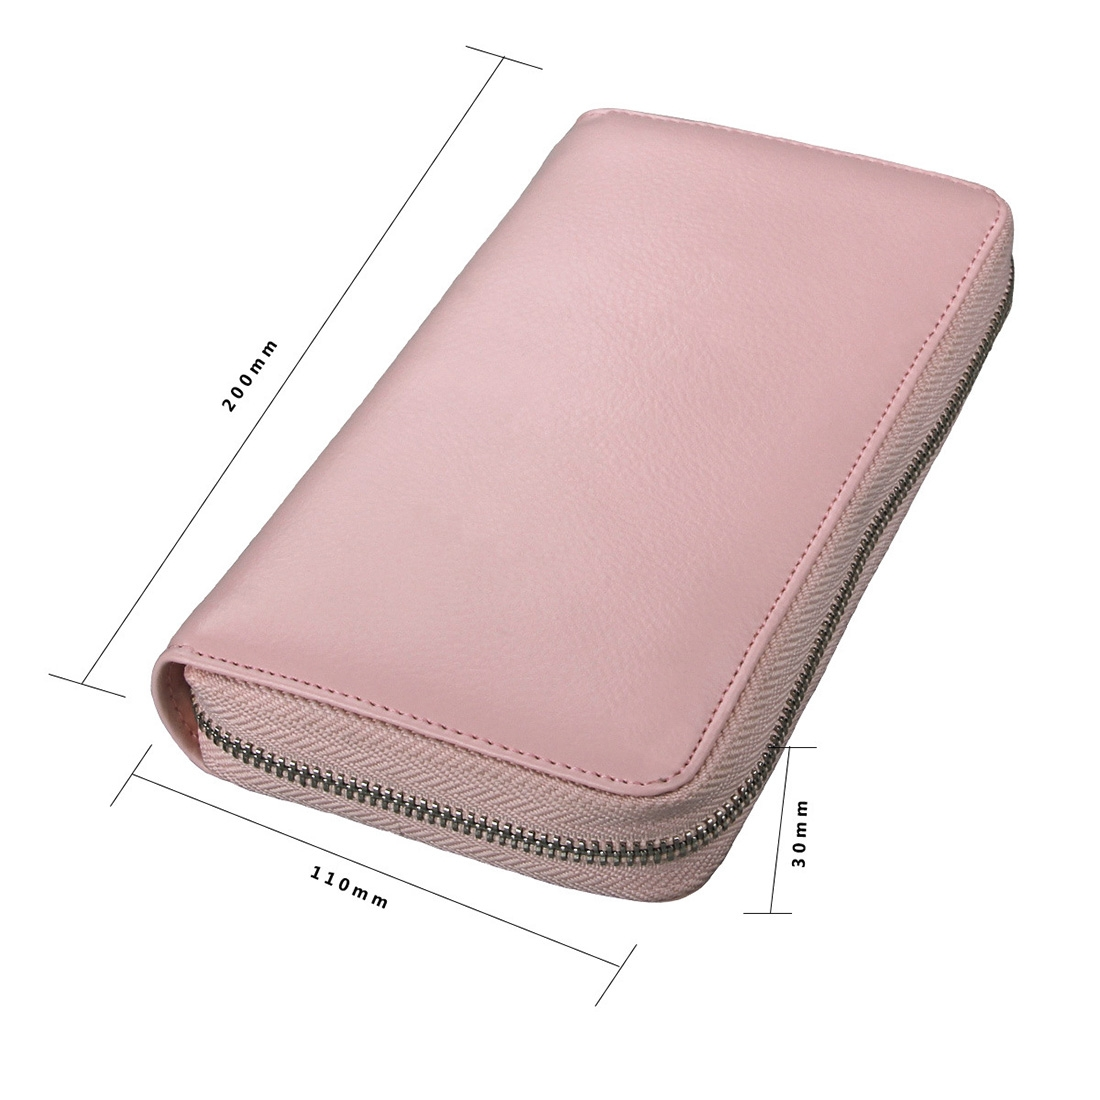 Antimagnetic RFID Large Capacity Long Style Genuine Leather Passport Package / Multifunctional and Many Card Slots Card Package (Pink)